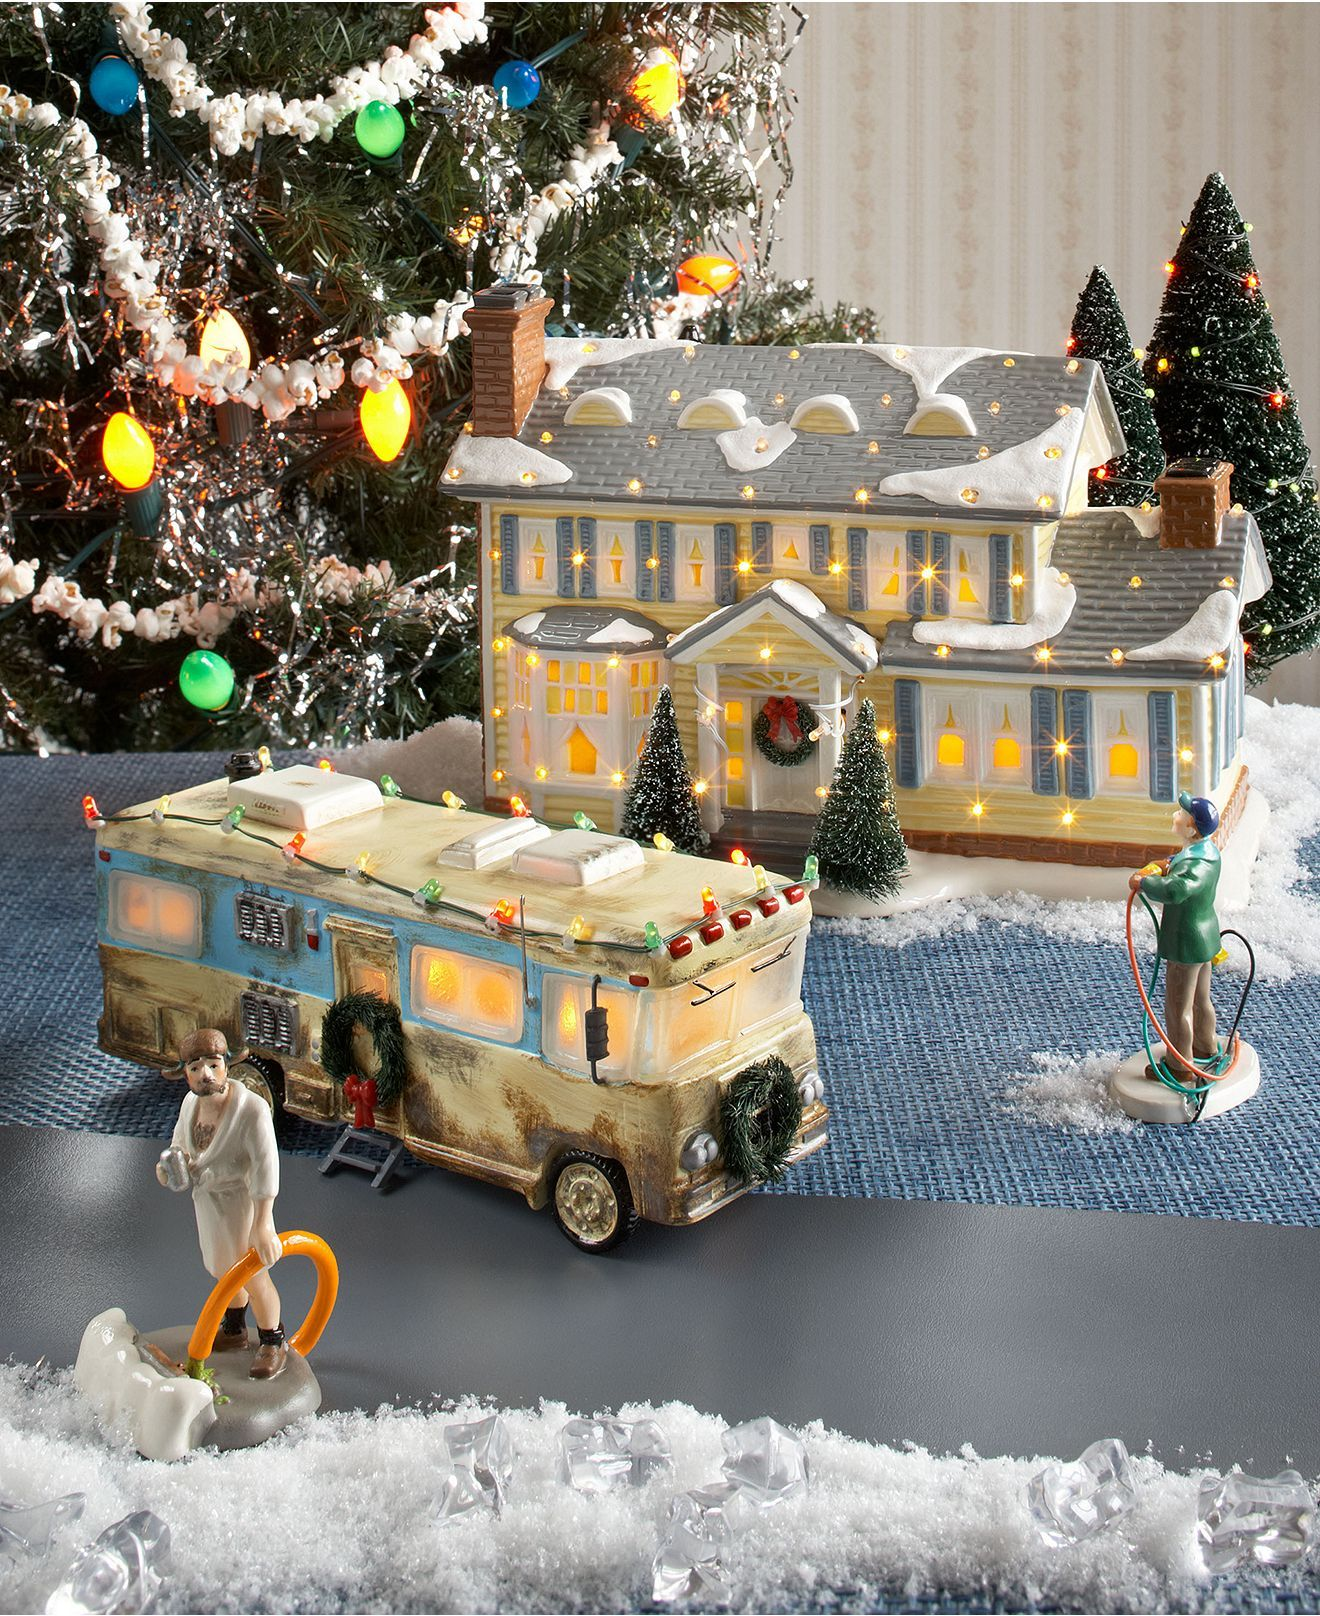 Department 56 Collectible Figurines Snow Village National